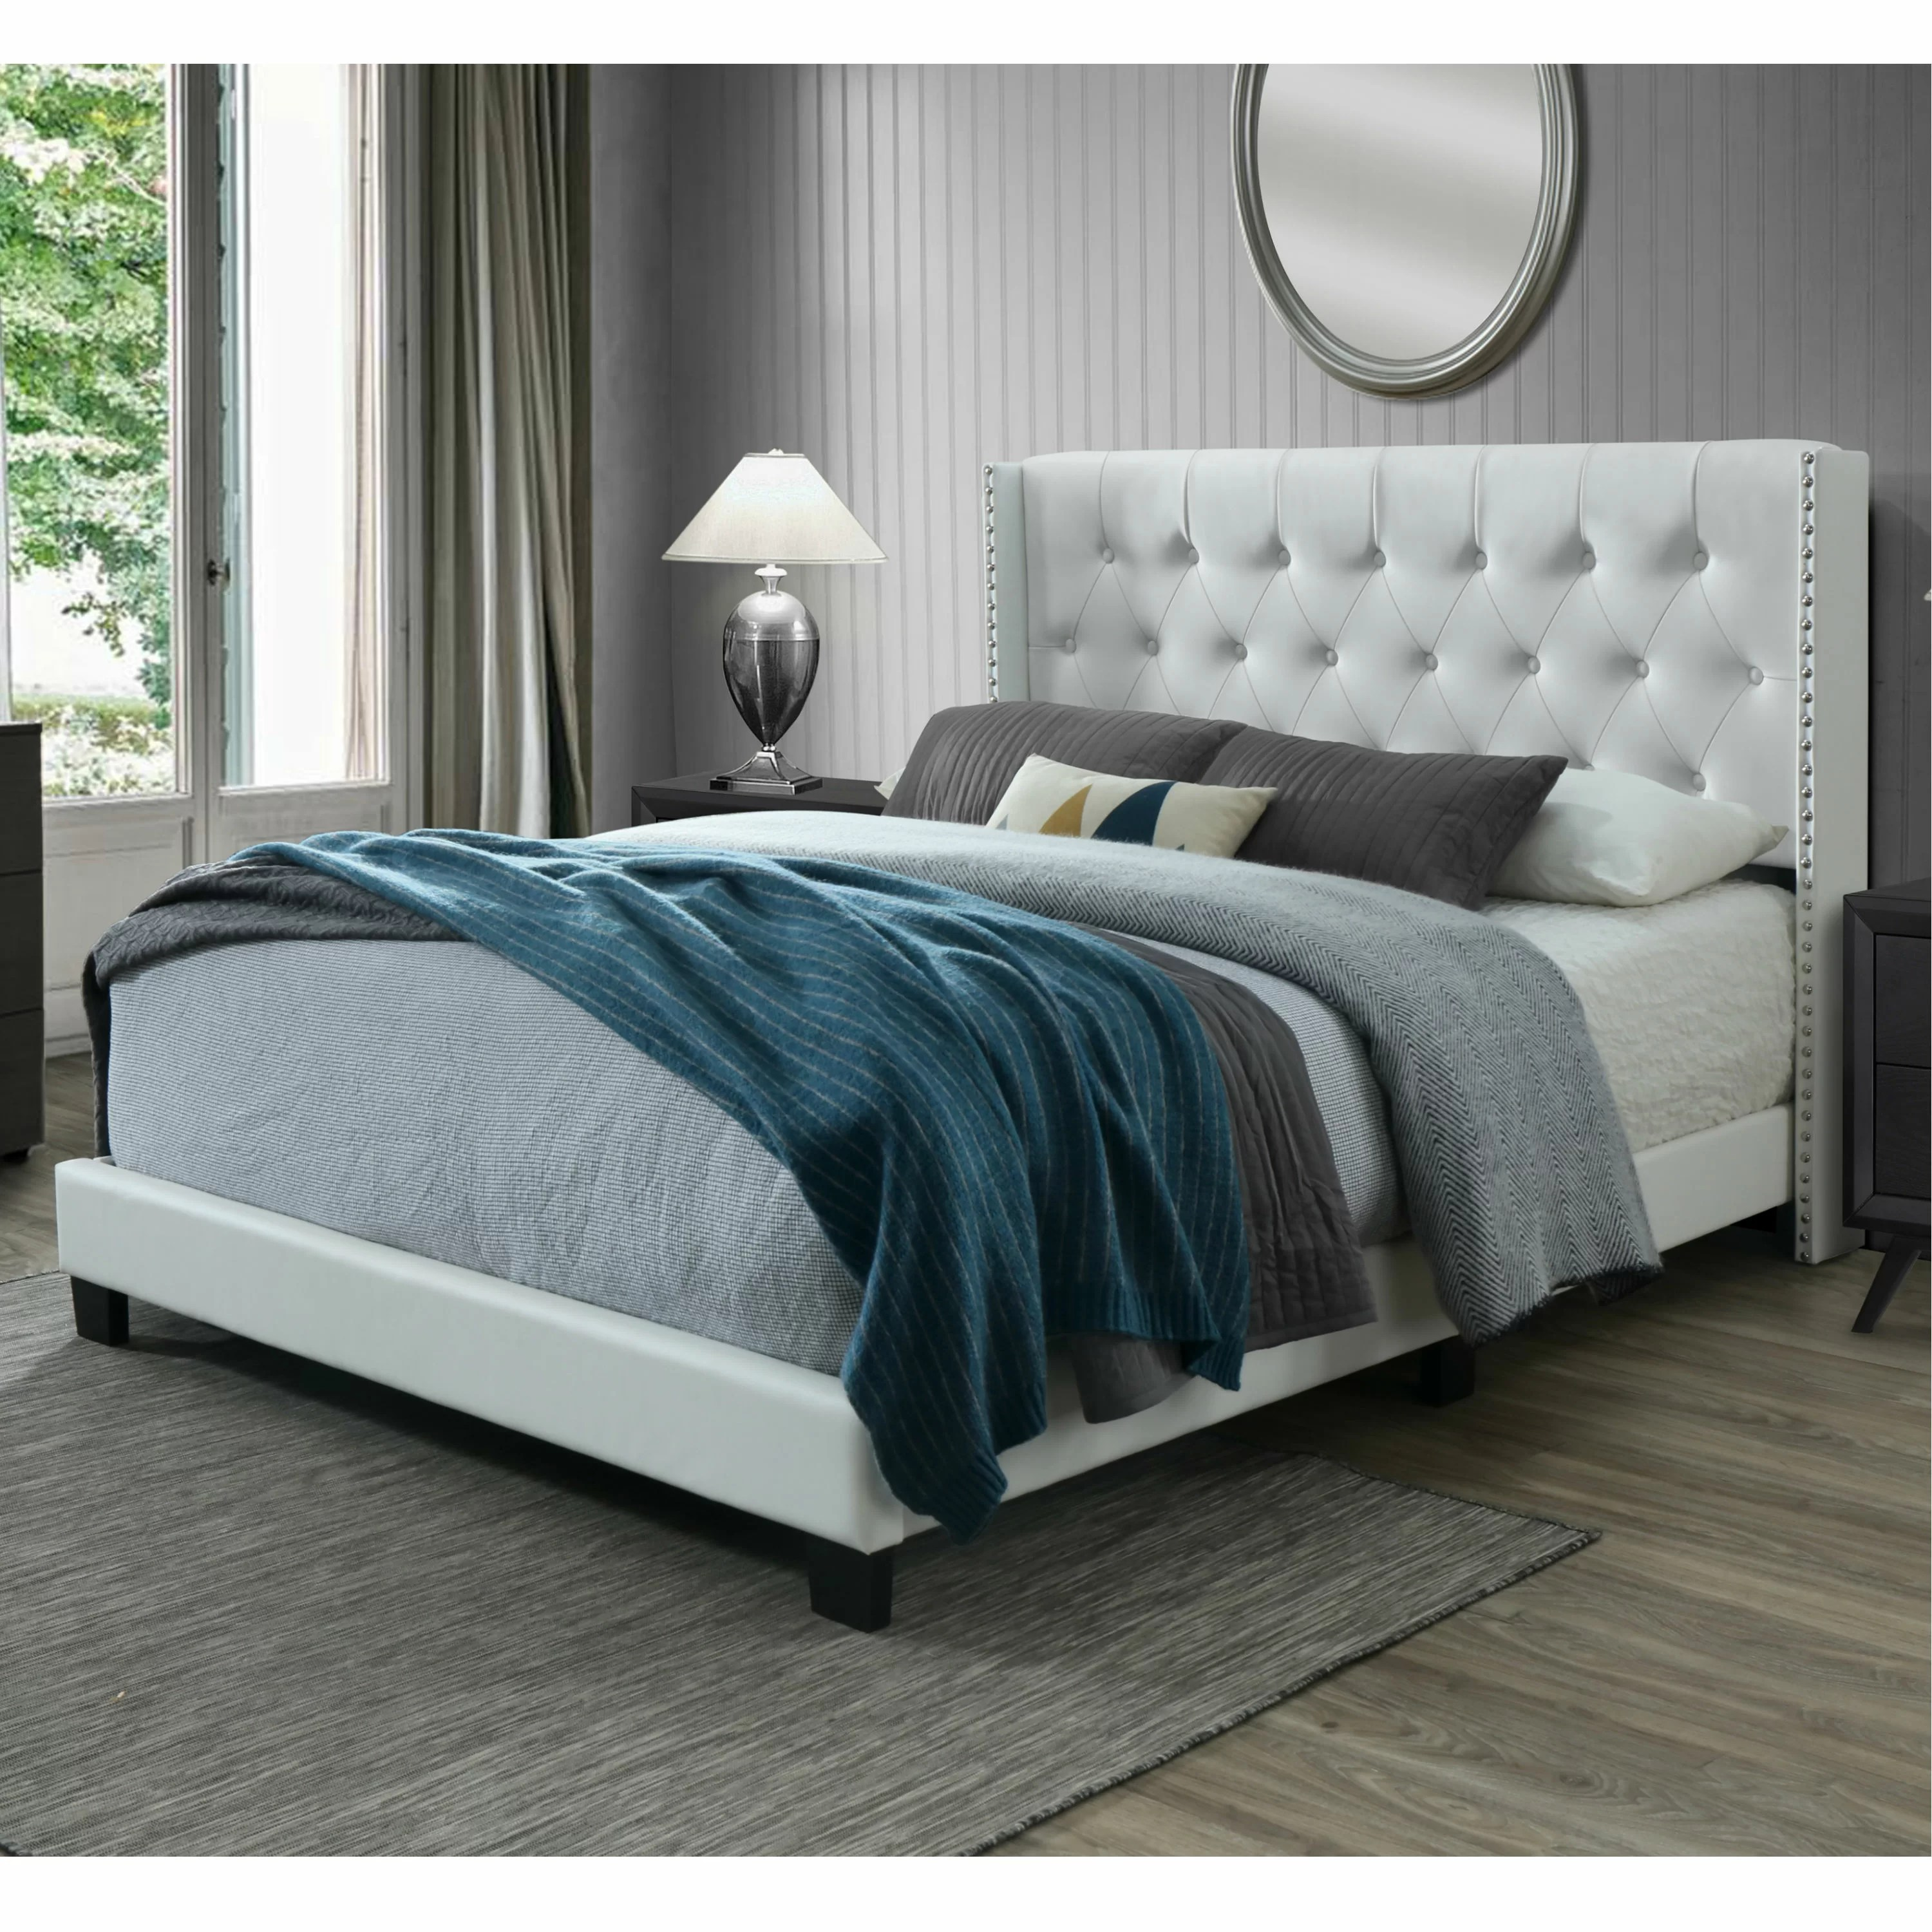 Willa Arlo Interiors Nadine Queen Tufted Upholstered Low Profile Standard Bed Reviews